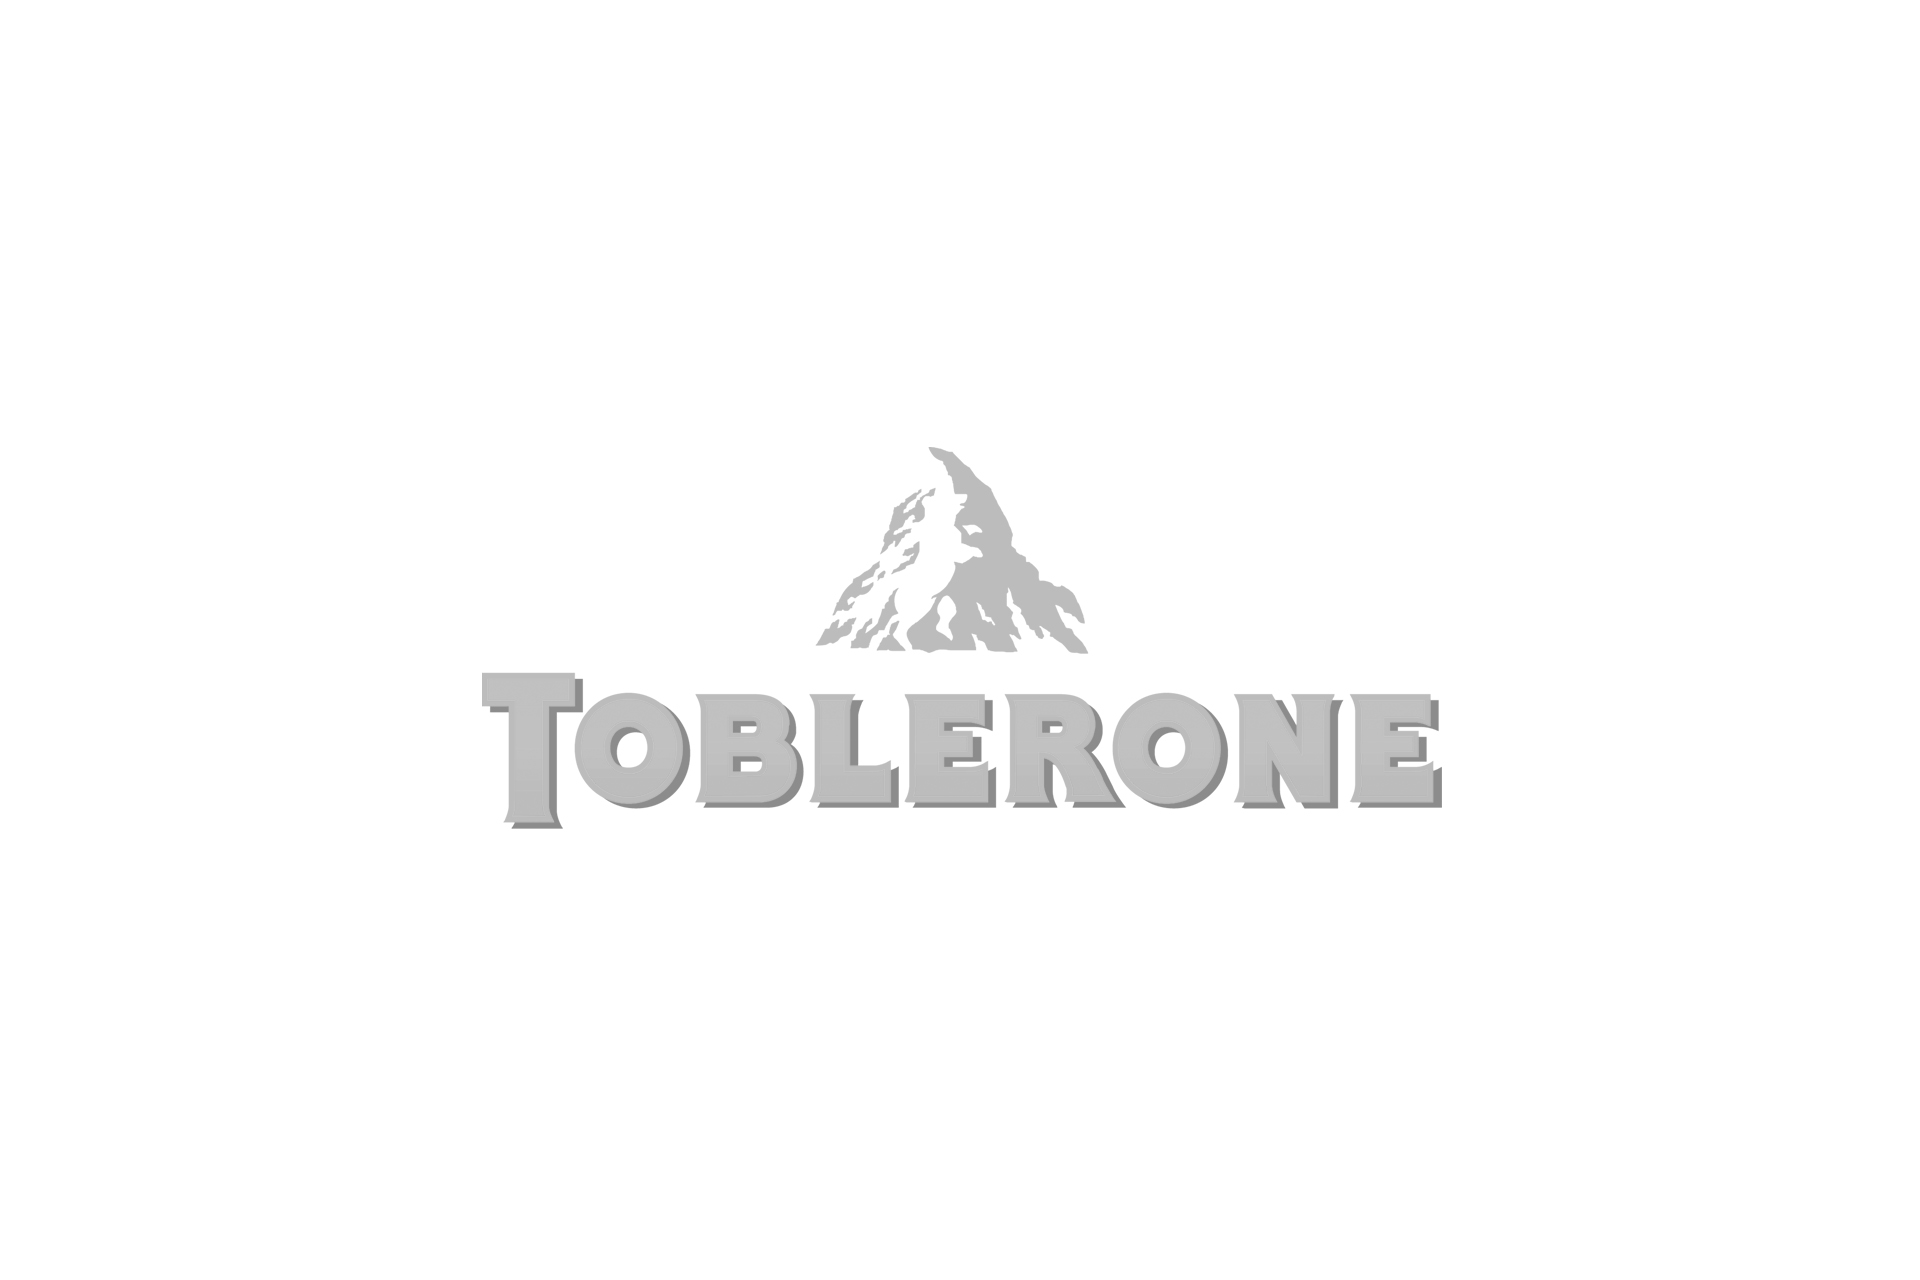 toblerone logo grey